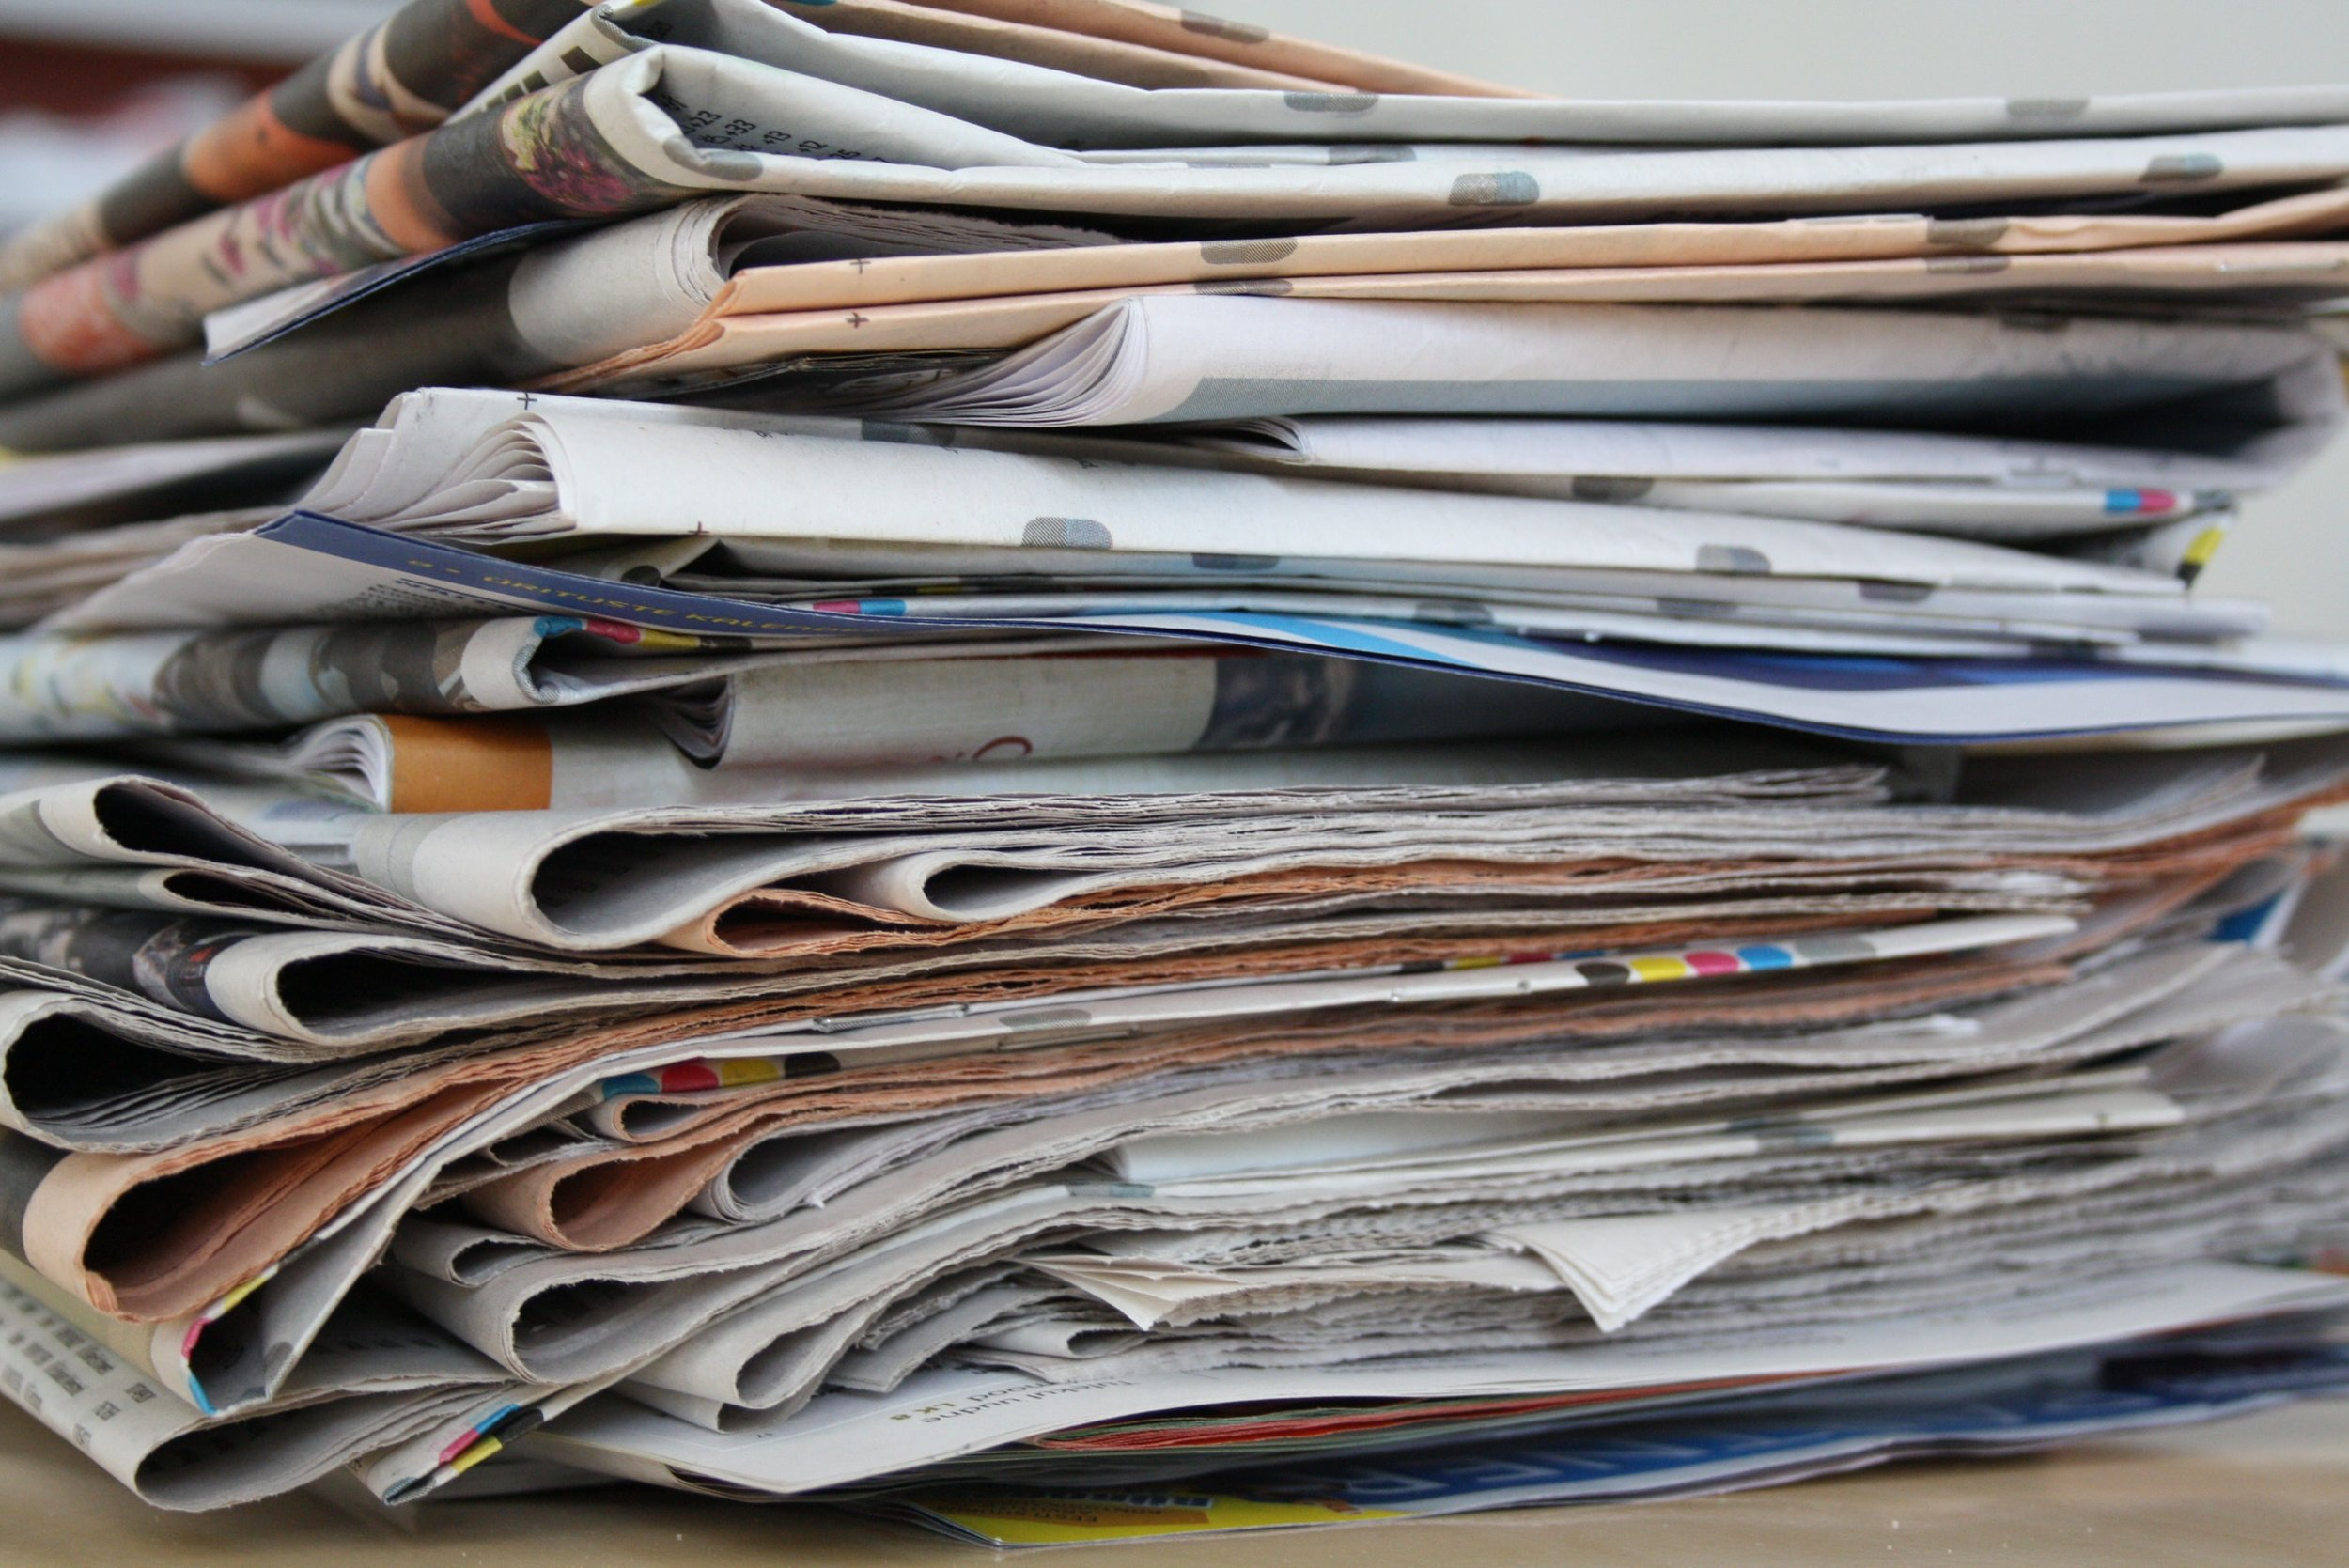 newspaper-newspaper-pile-old-newspapers-832539.jpg